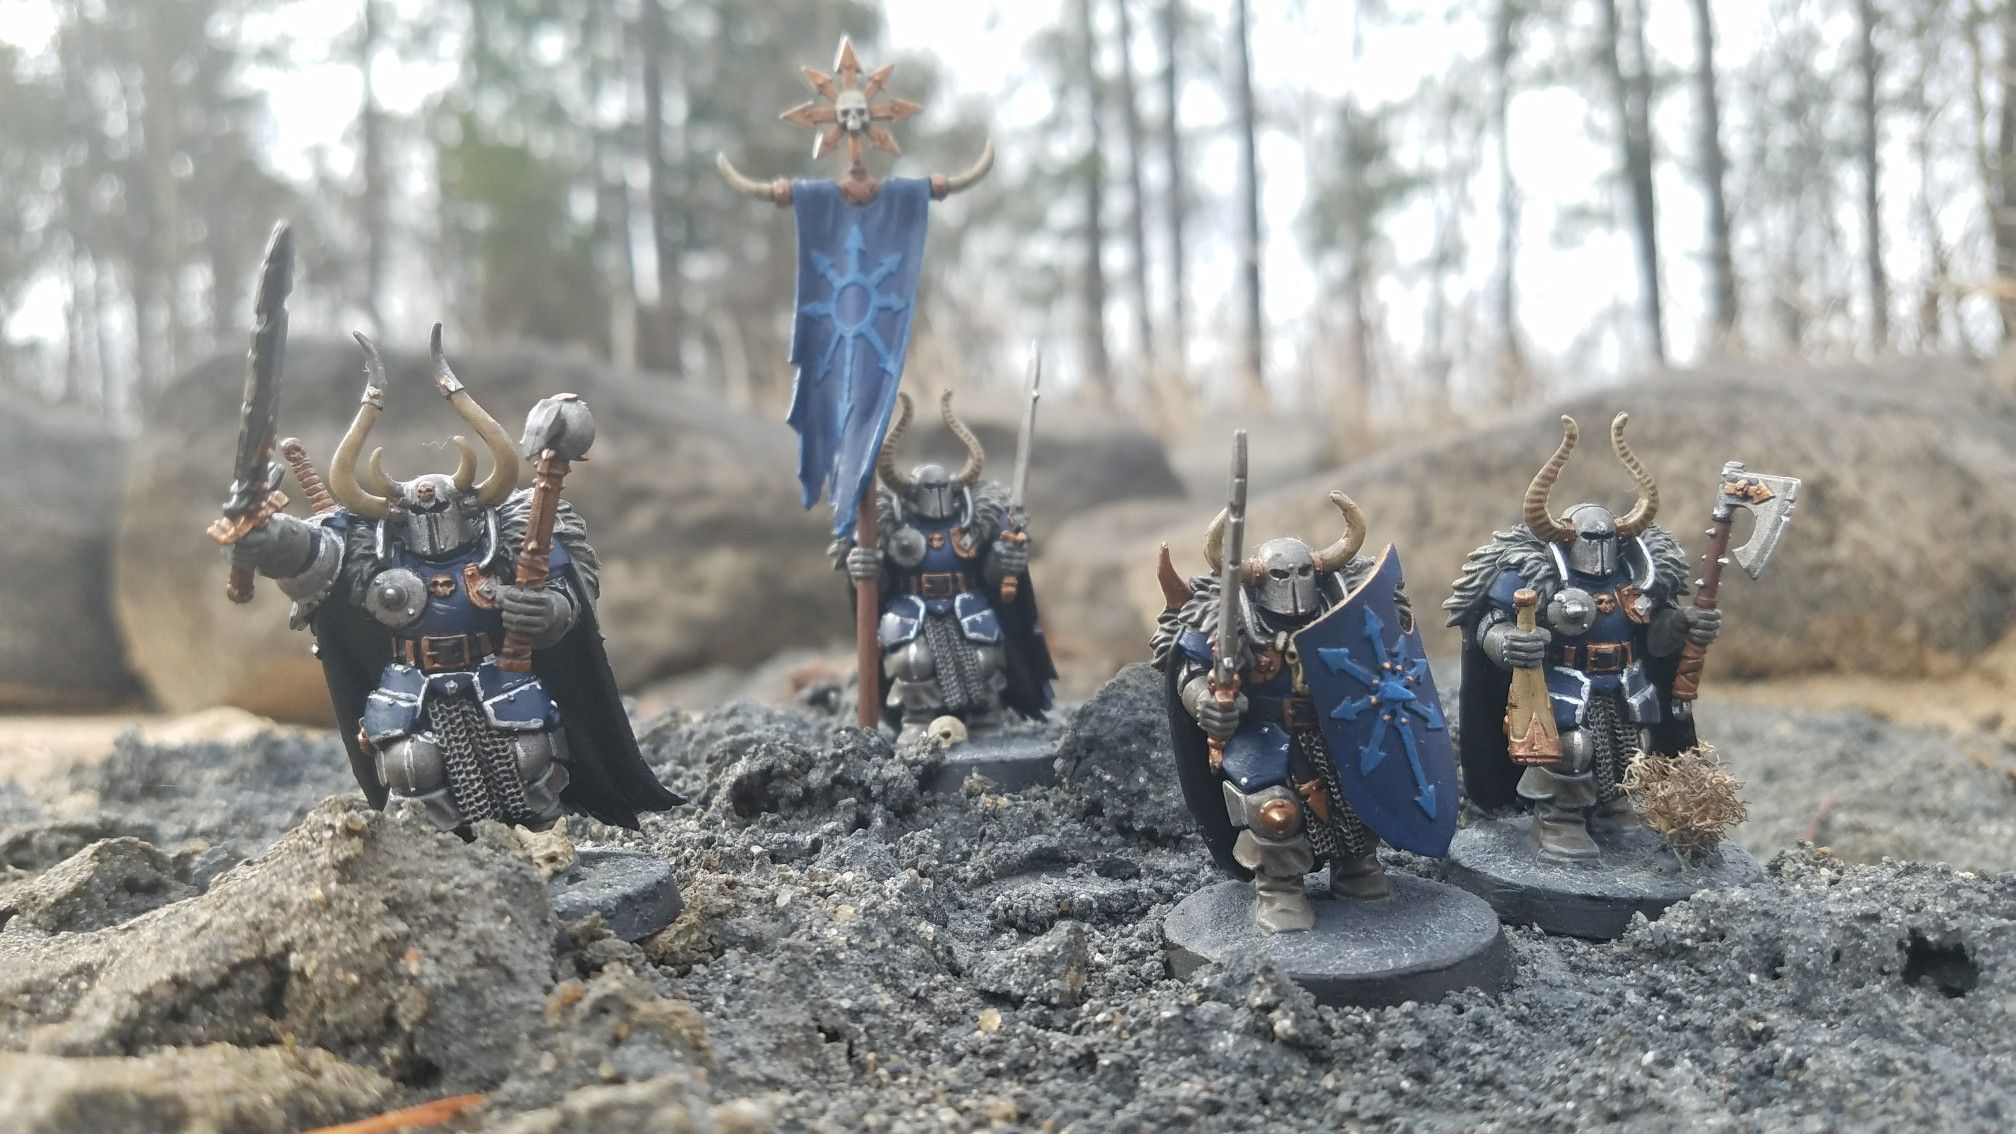 Jordan Lake 'mini' photo shoot. #warhammer #gamesworkshop